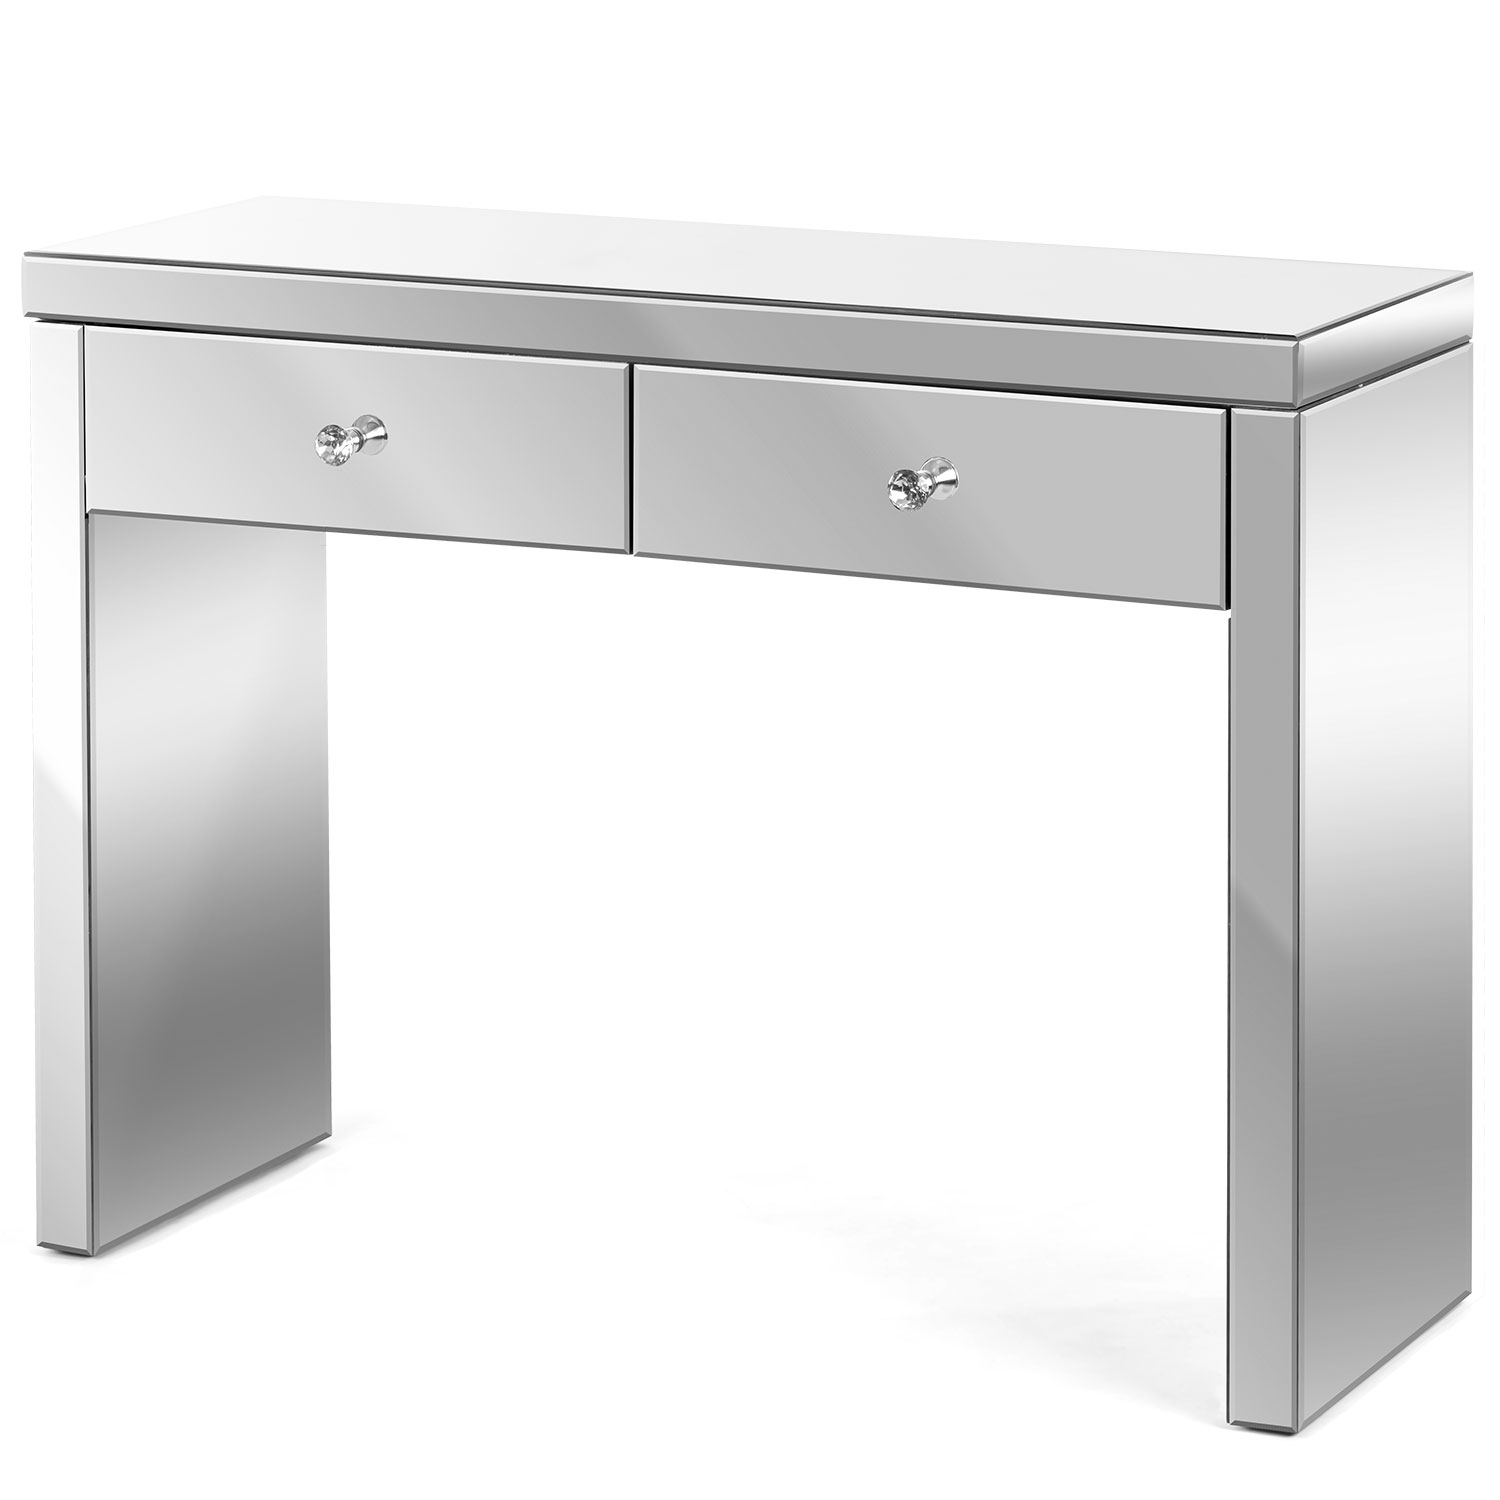 Image of Christow 2 Drawer Mirrored Console Table